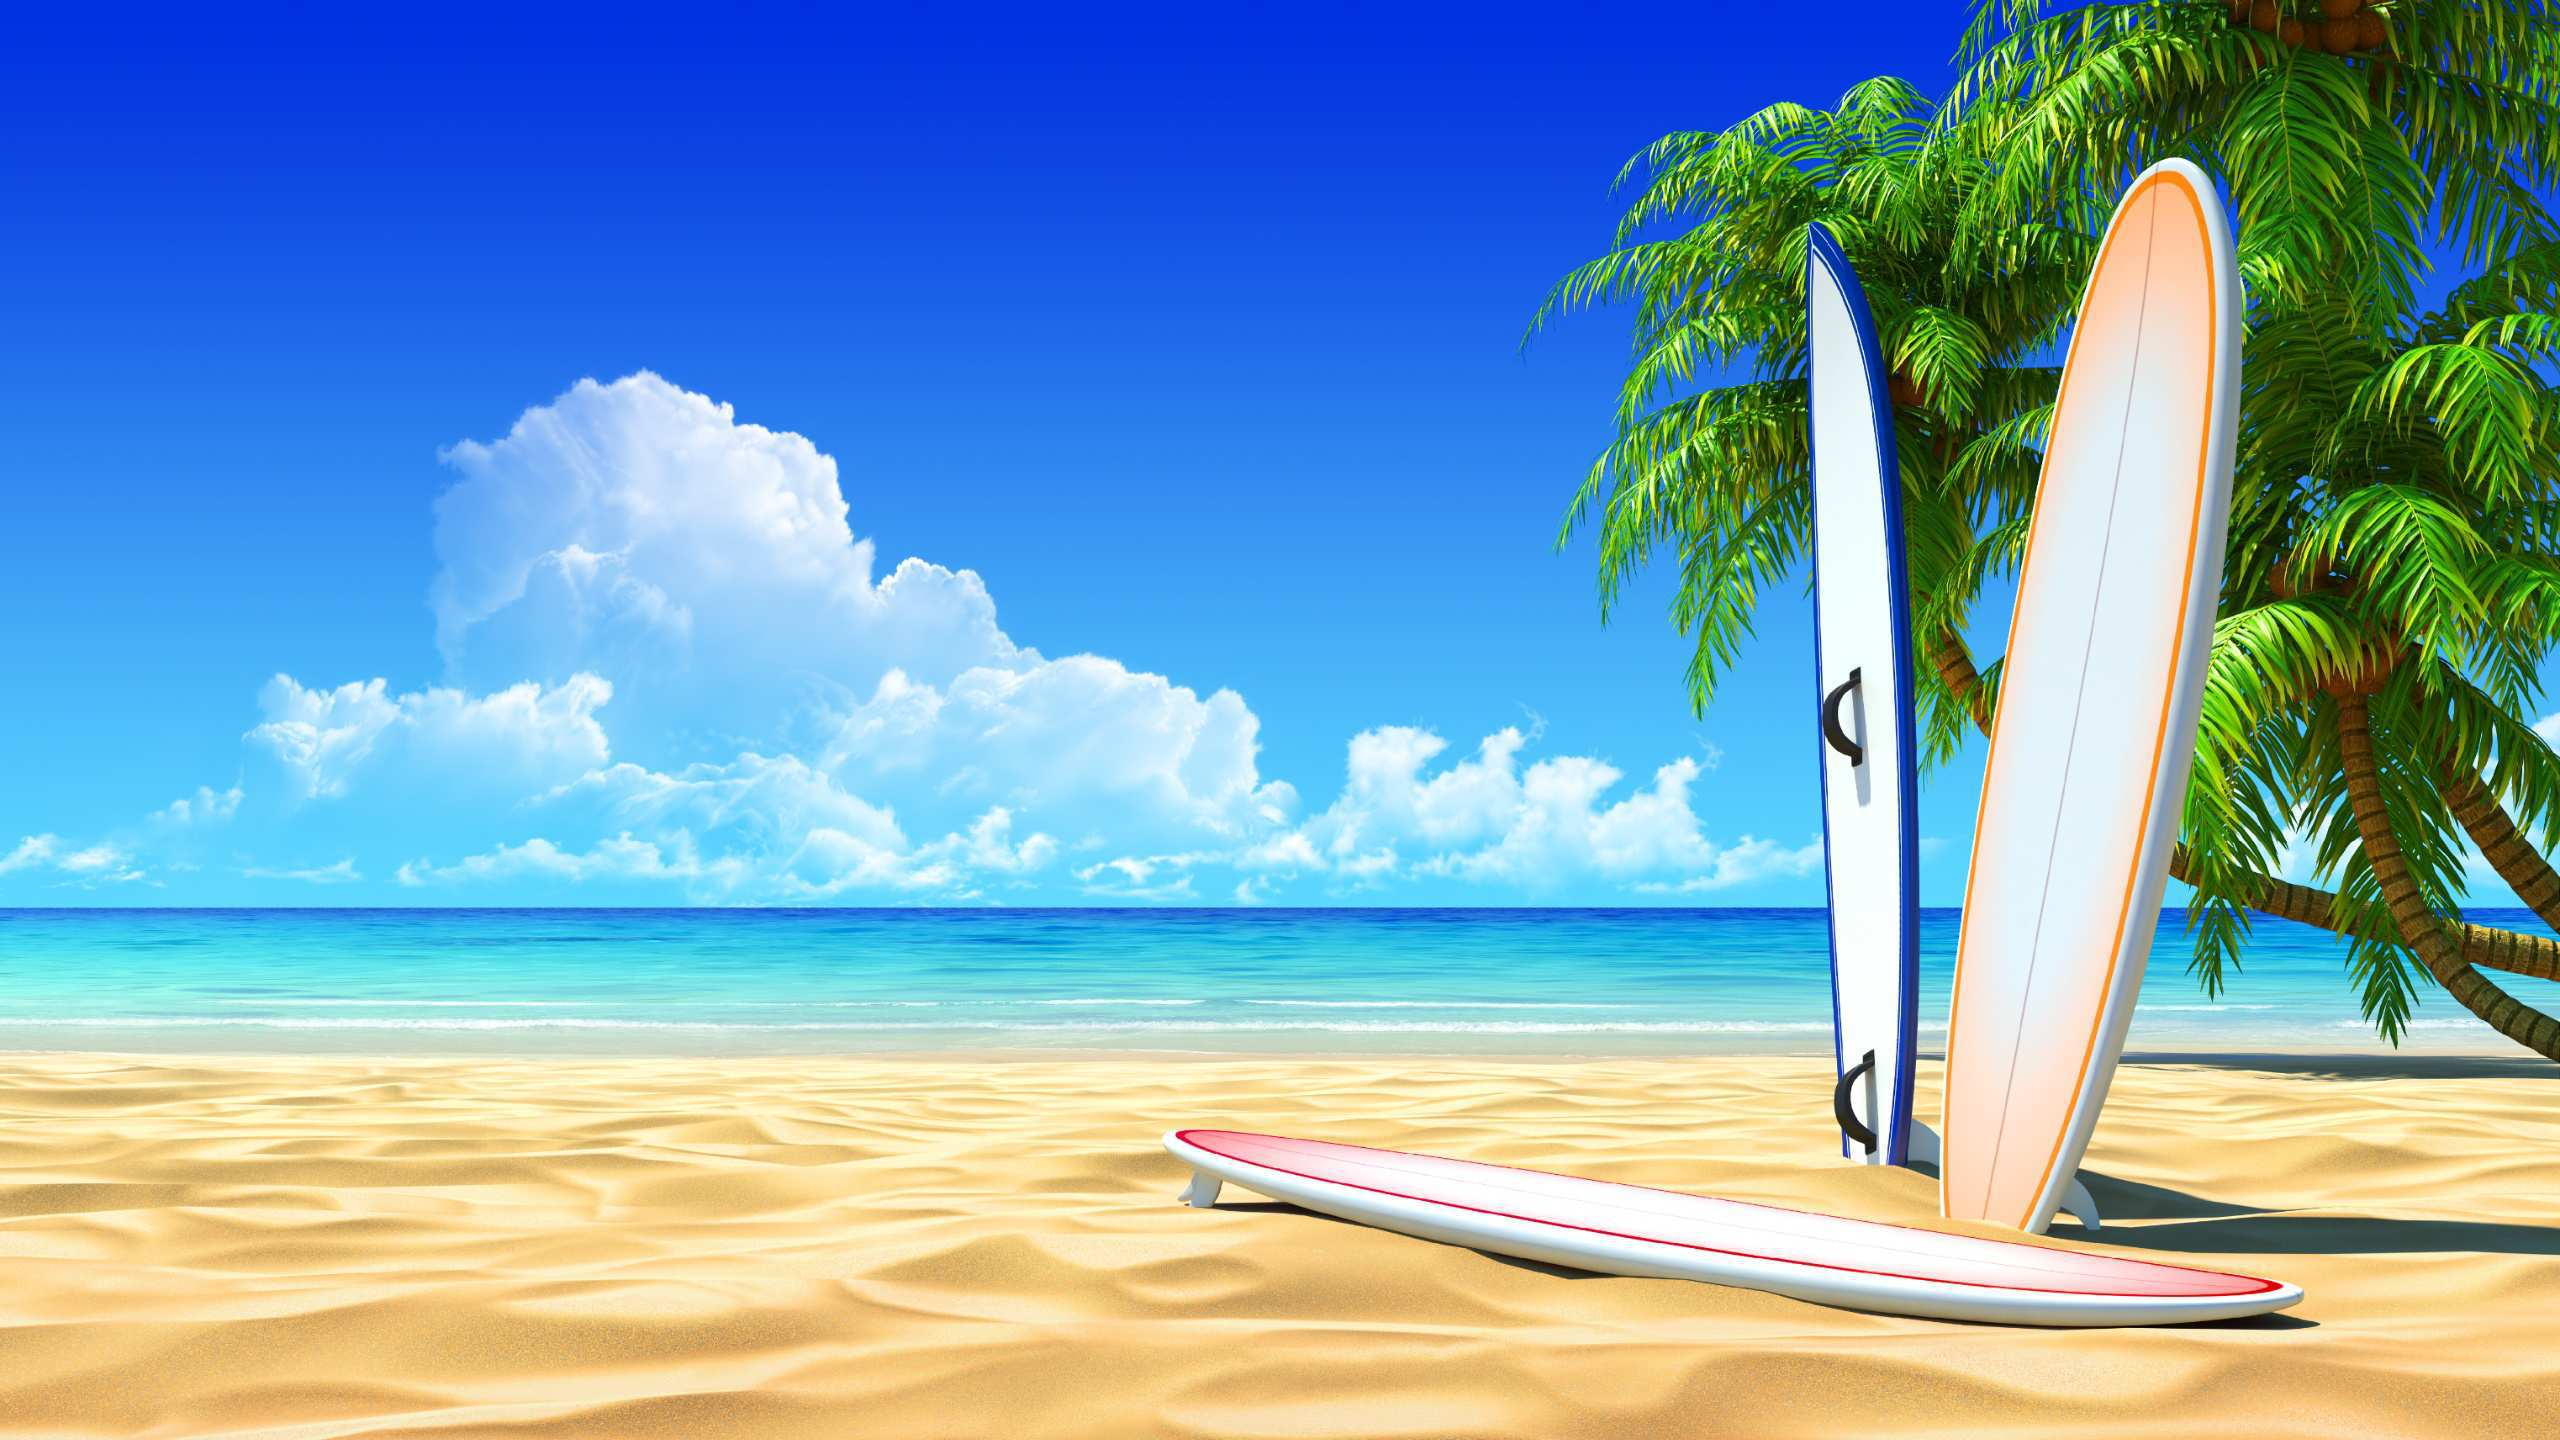 Download Surfboards Wallpaper Wallpapers 2560x1440